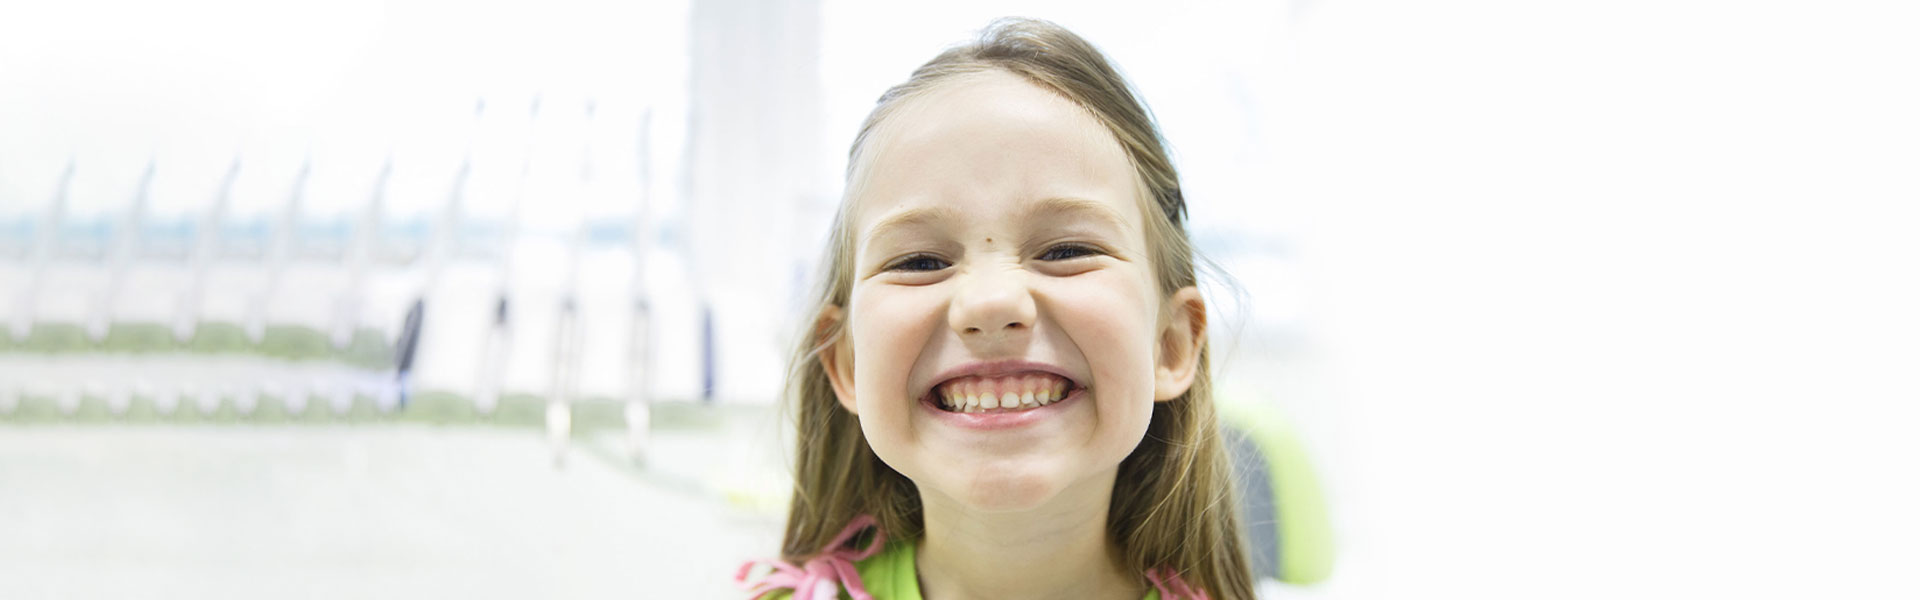 Pediatric Dental Behavior Management: What Is It and Is It Essential?